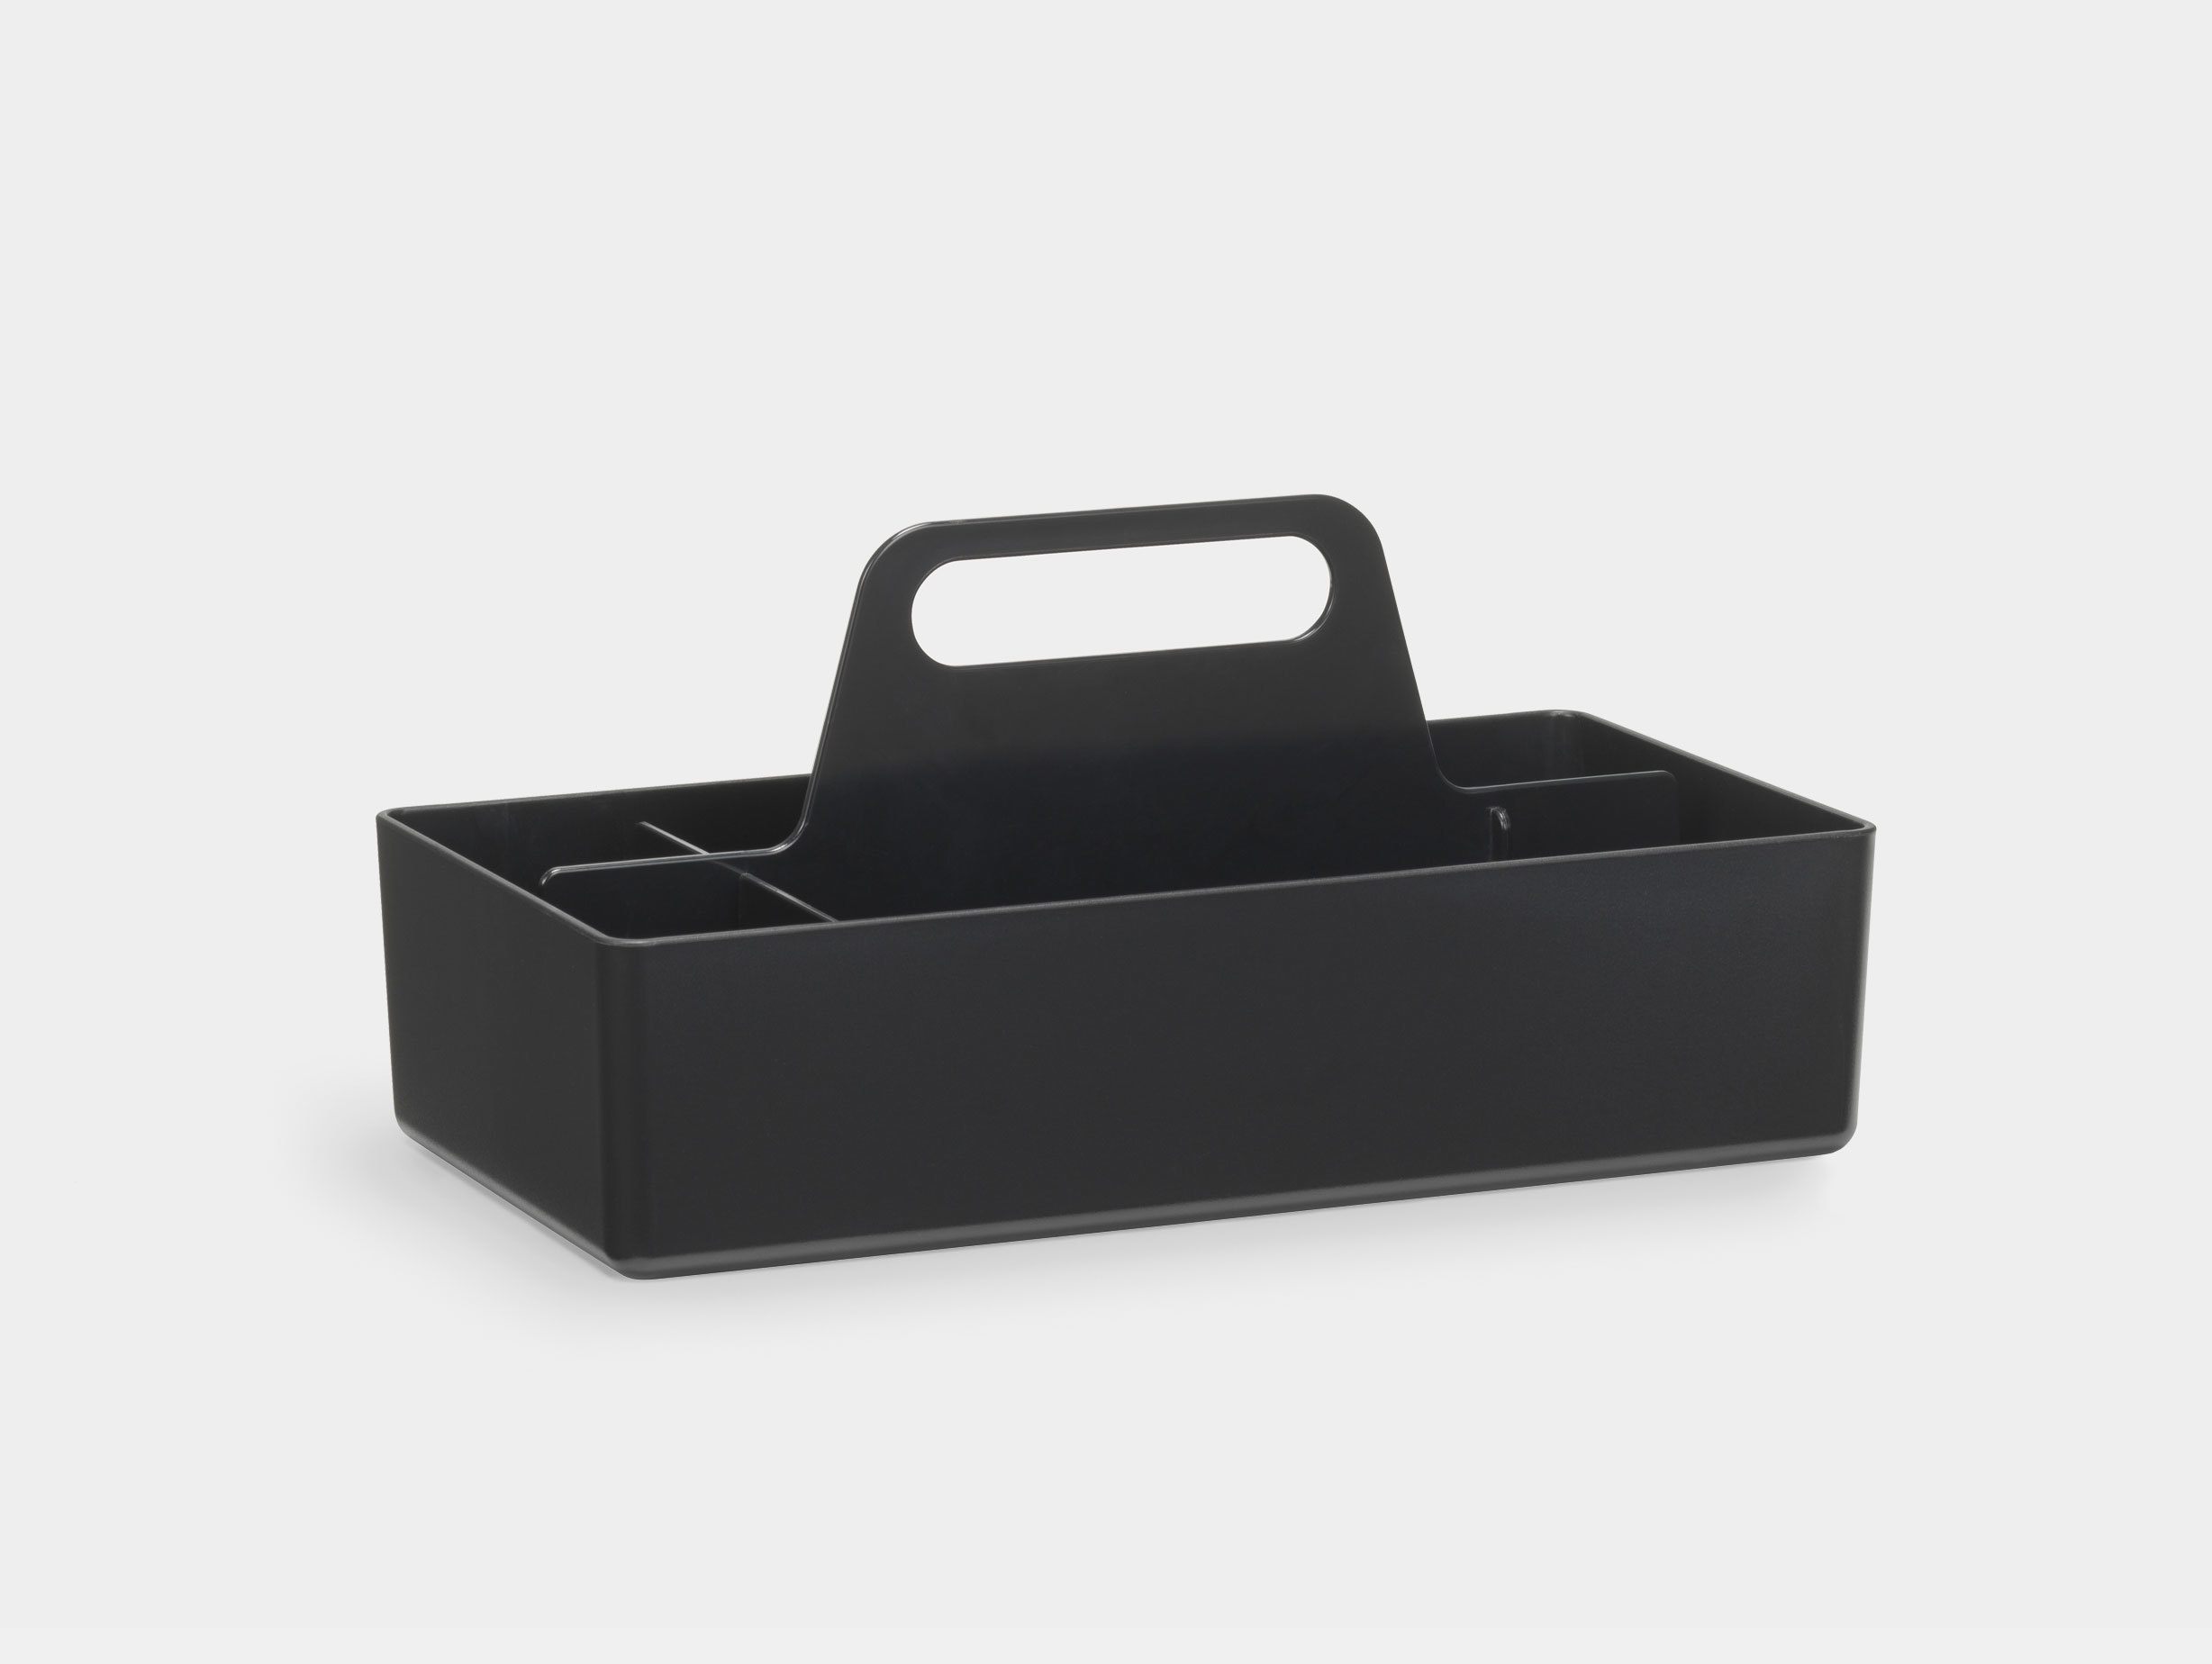 Vitra Toolbox Basic Dark Arik Levy